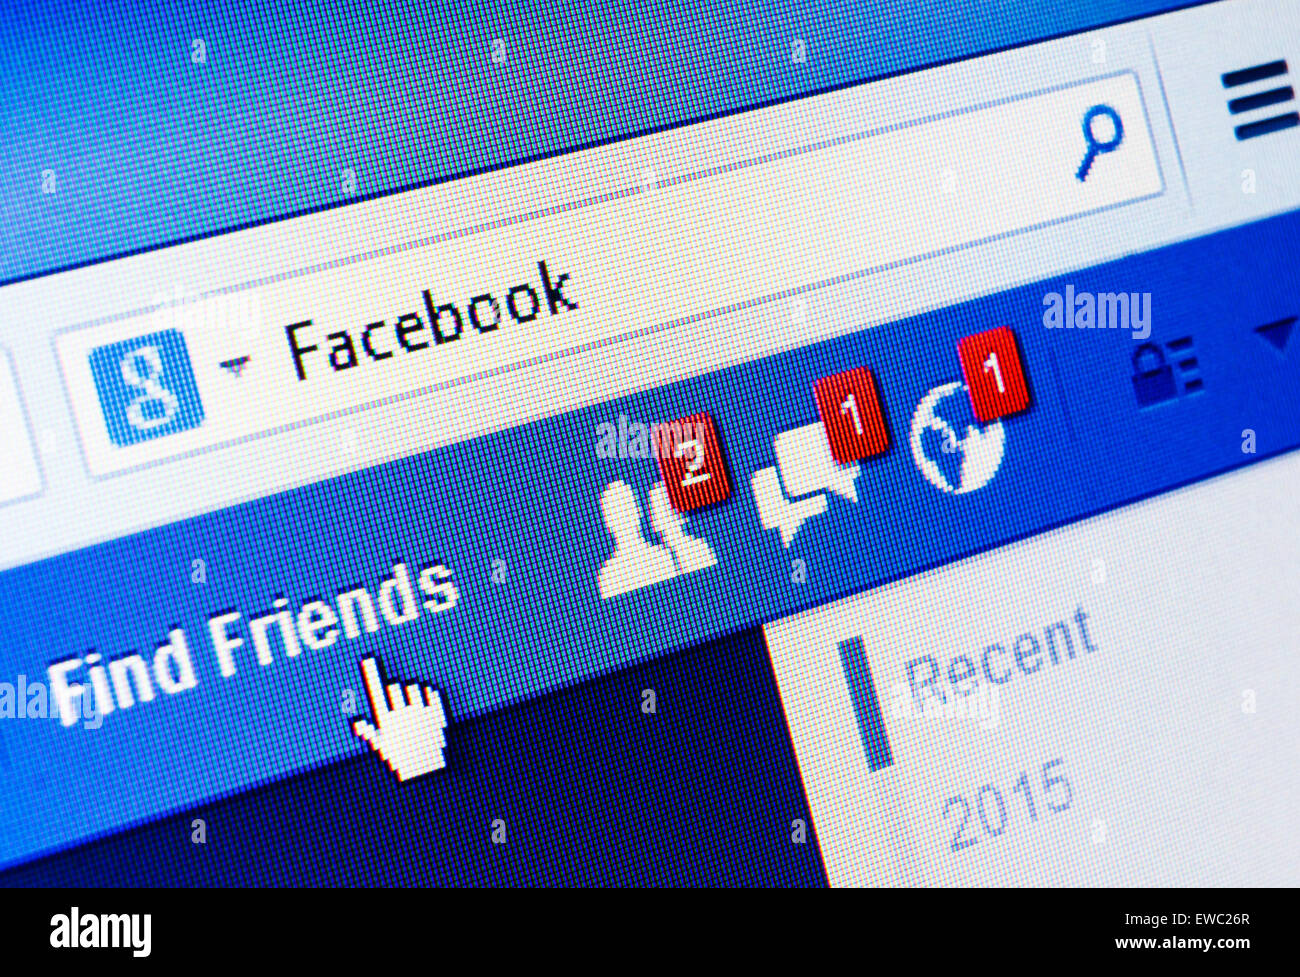 GDANSK, POLAND - 18 JANUARY 2015. Facebook.com homepage on the screen. Facebook is an online social networking and - Stock Image